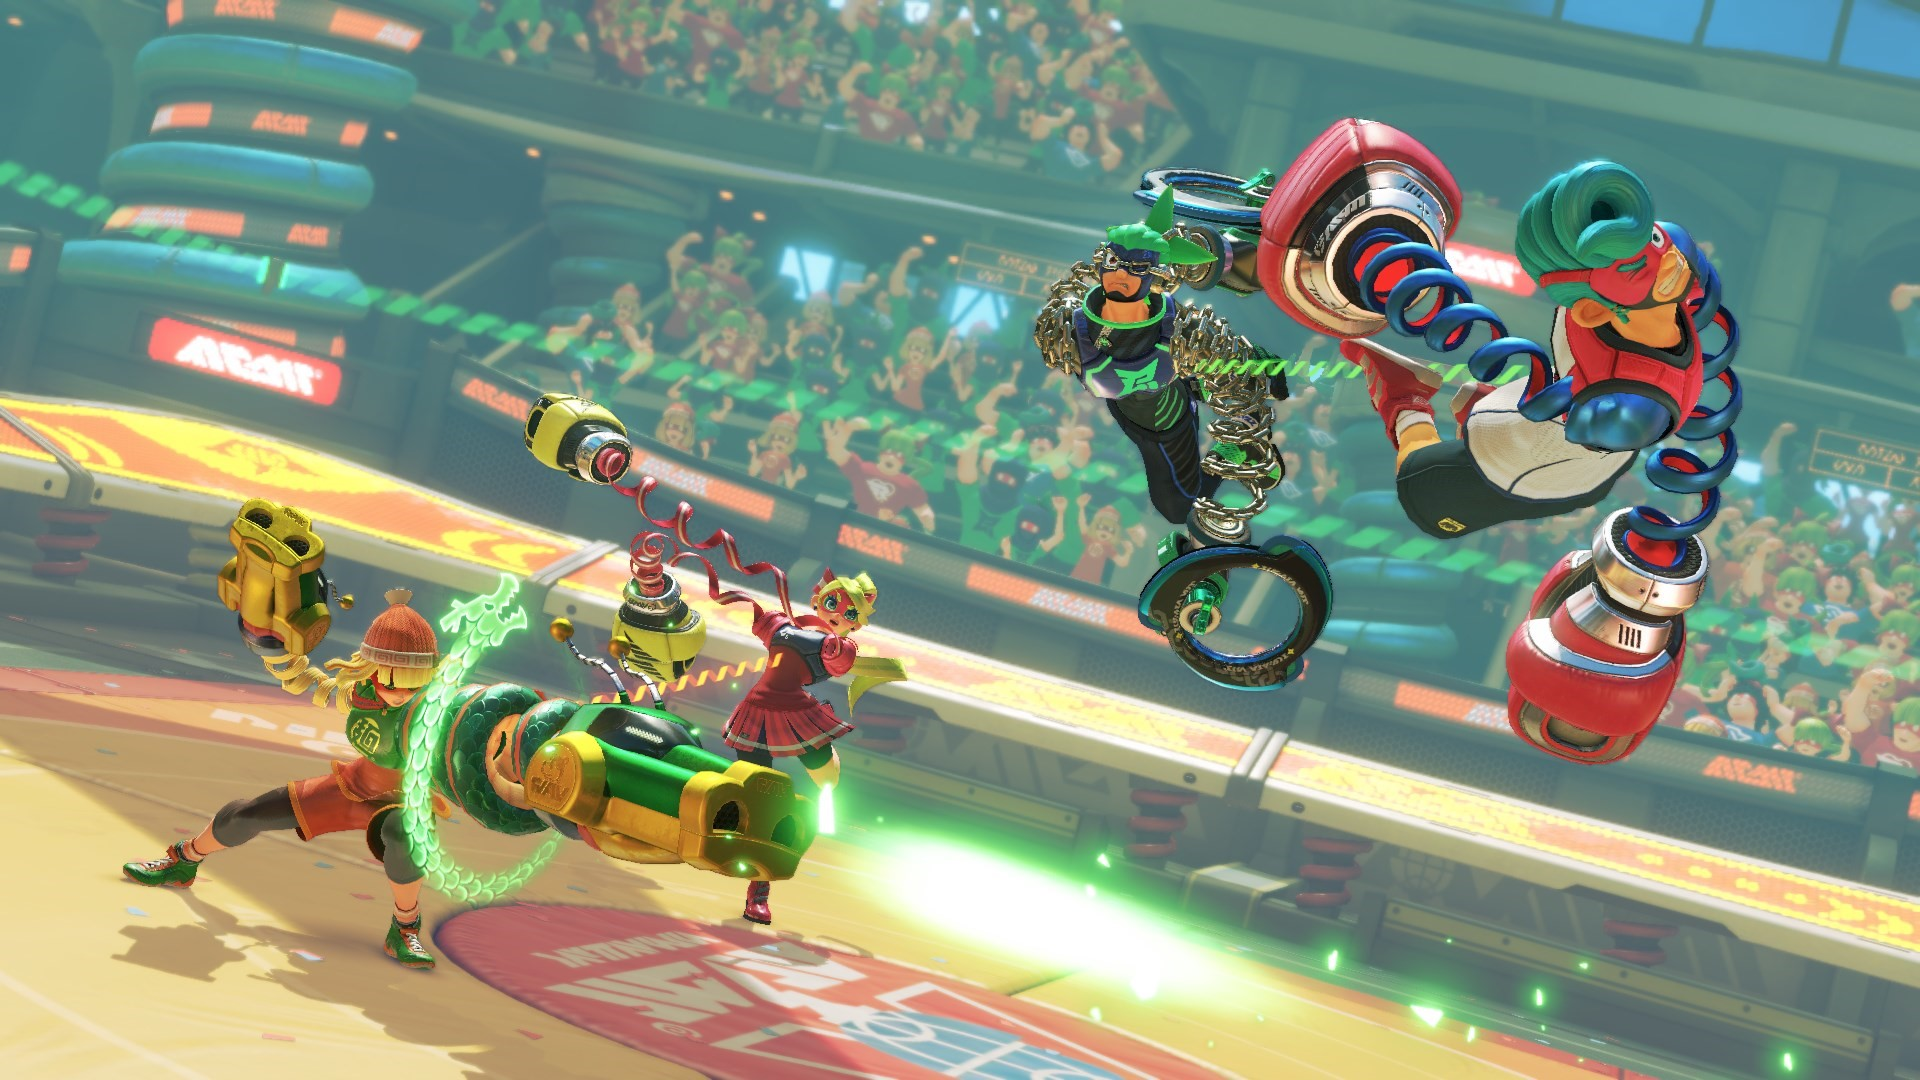 arms_screenshot_1